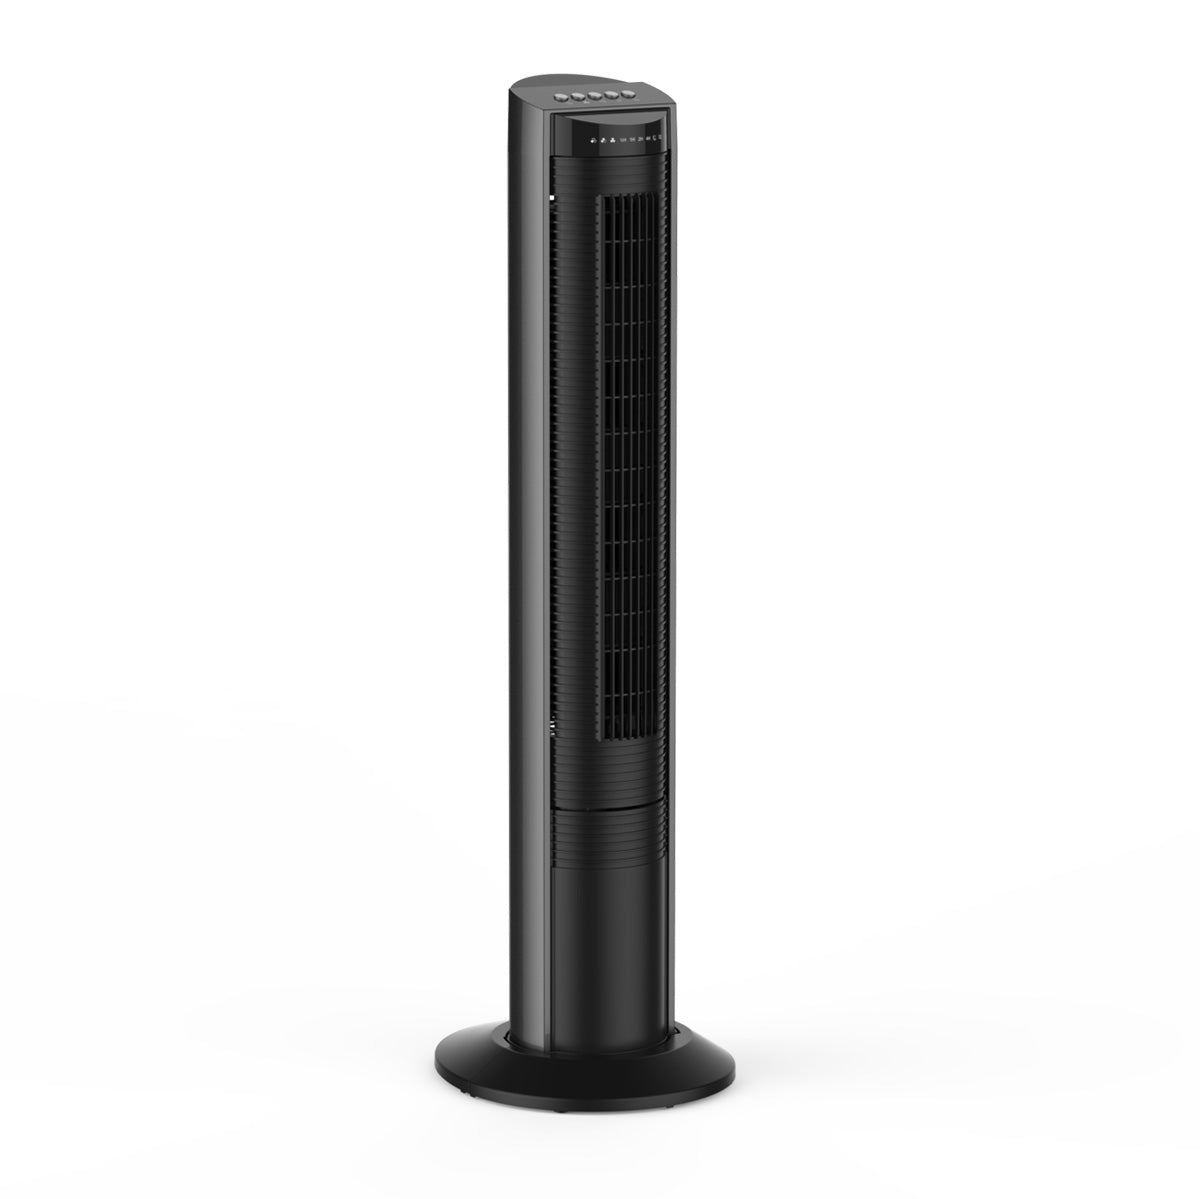 Tower Fan Airvention X02BR Tilting Oscillating Tower Fan - Black